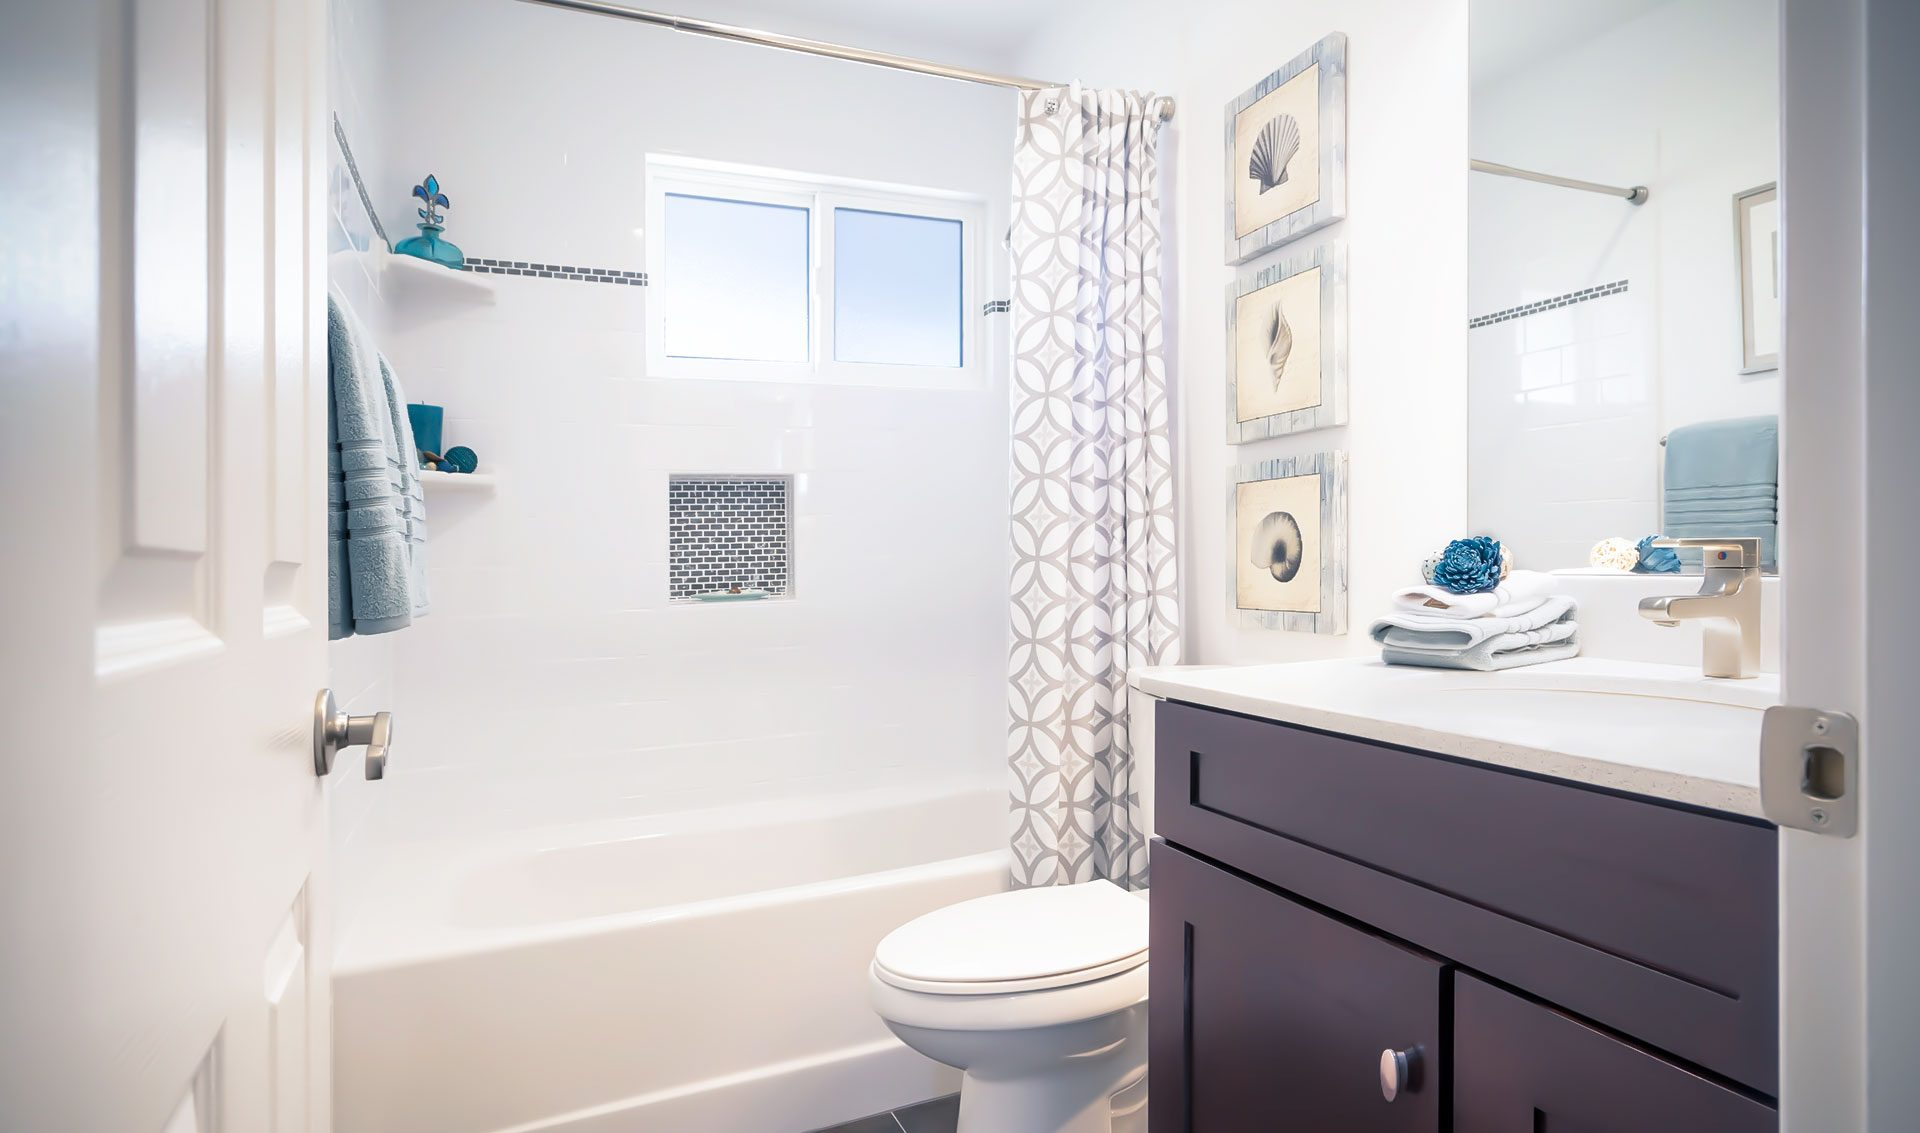 Bathroom Remodel Trends a look at the top 10 bathroom remodeling trends of 2016